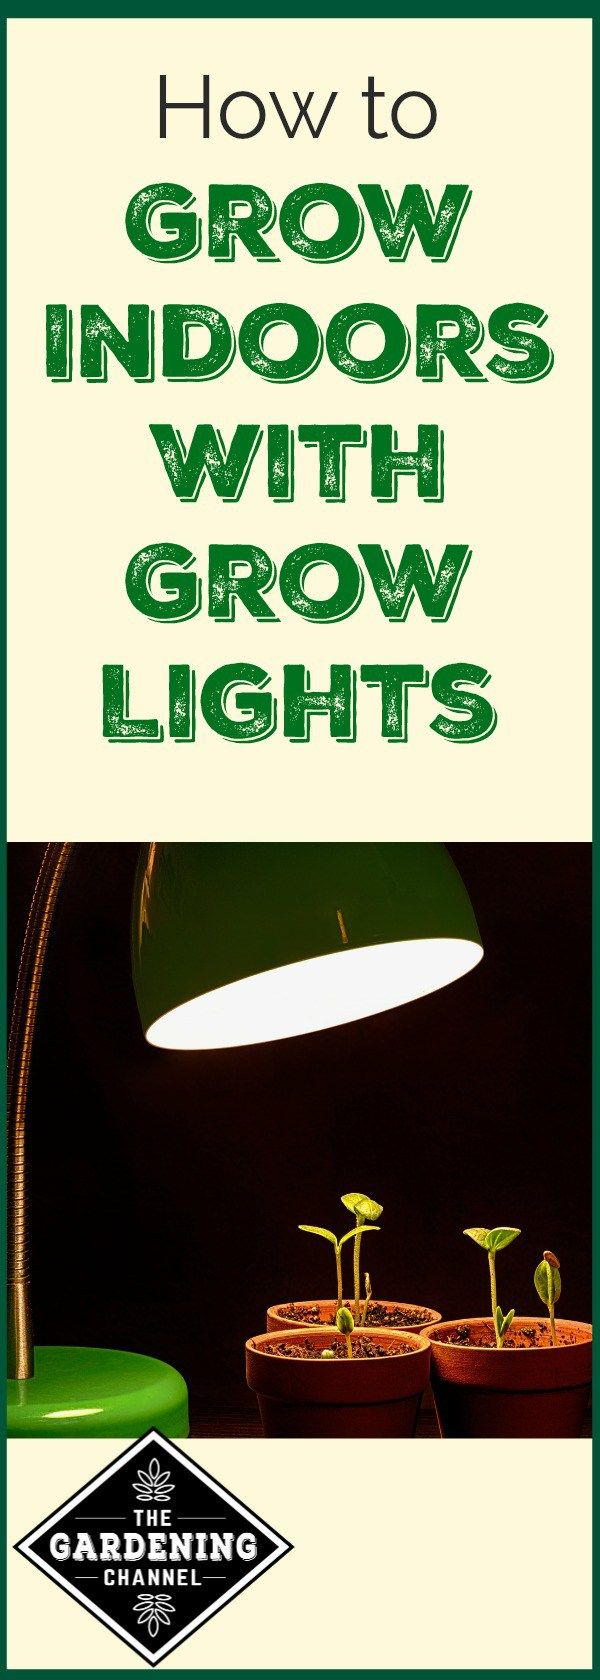 How to use grow lights to garden in the winter indoors. Learn what kind of light to use and which plants will flourish.